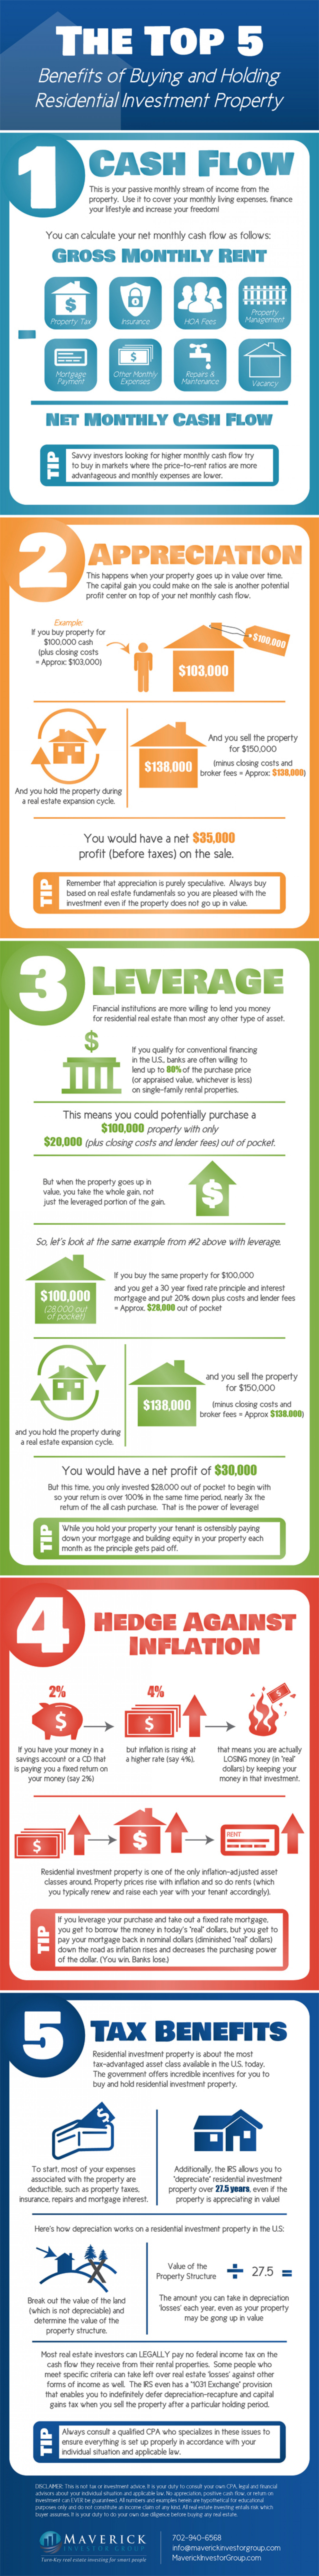 The Top 5 Benefits of Buying and Holding Residential Investment property Infographic